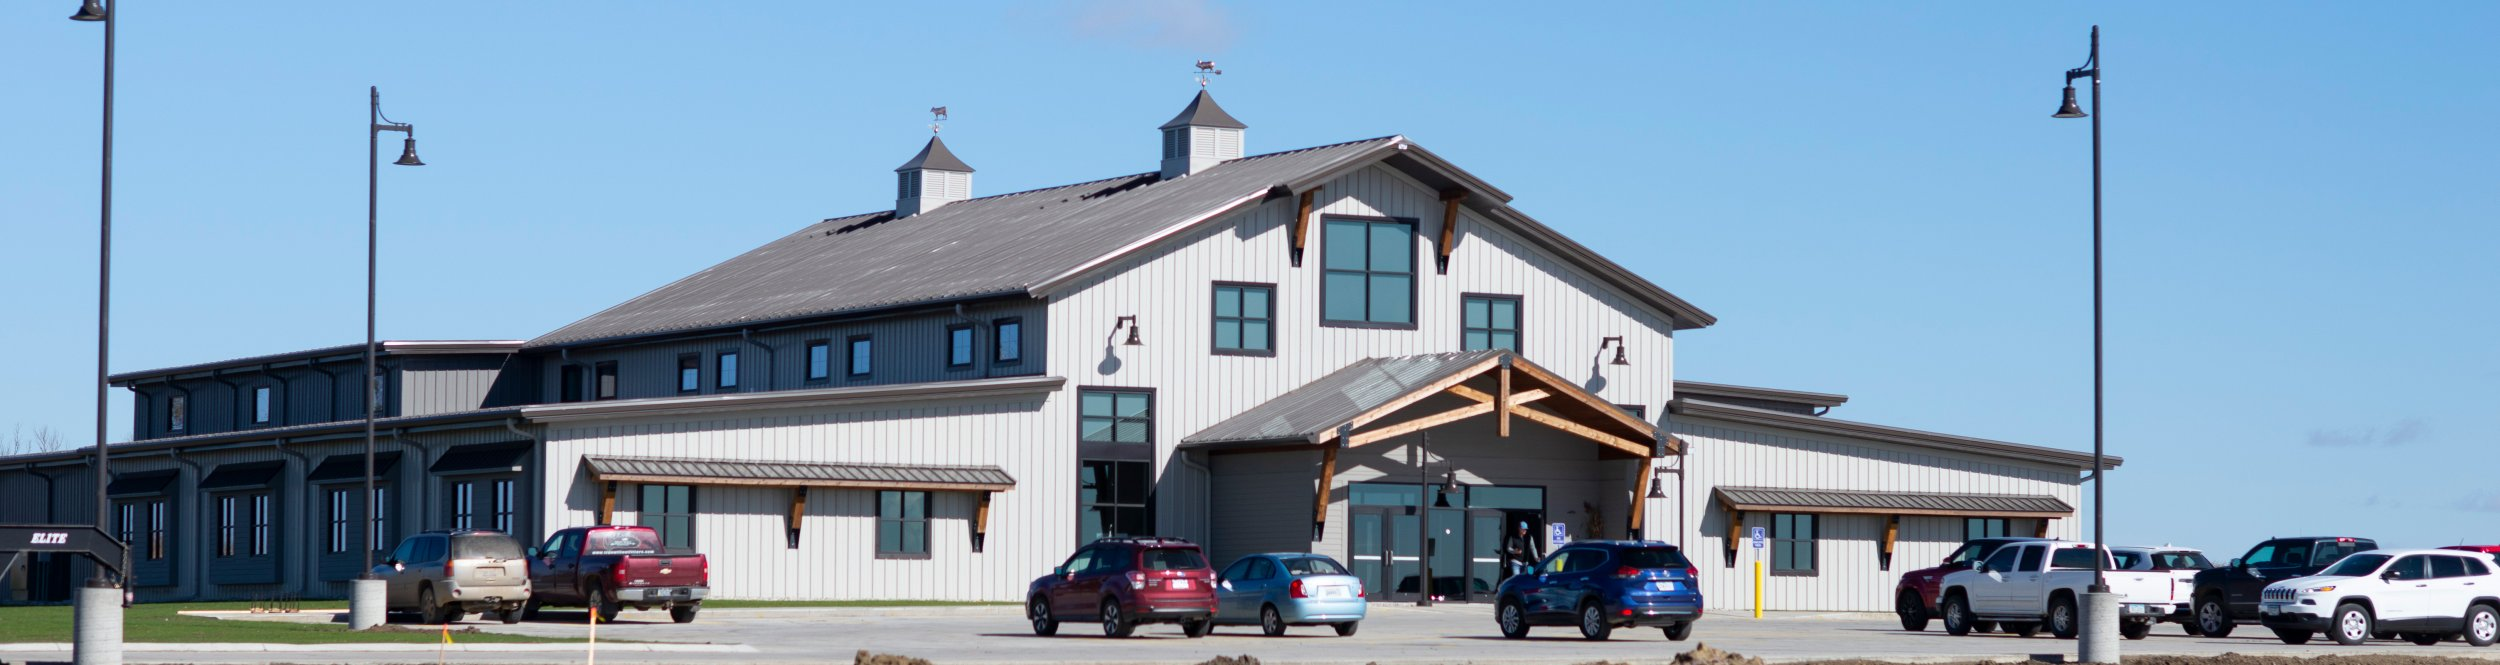 A large barn-like building with cars in front of it.